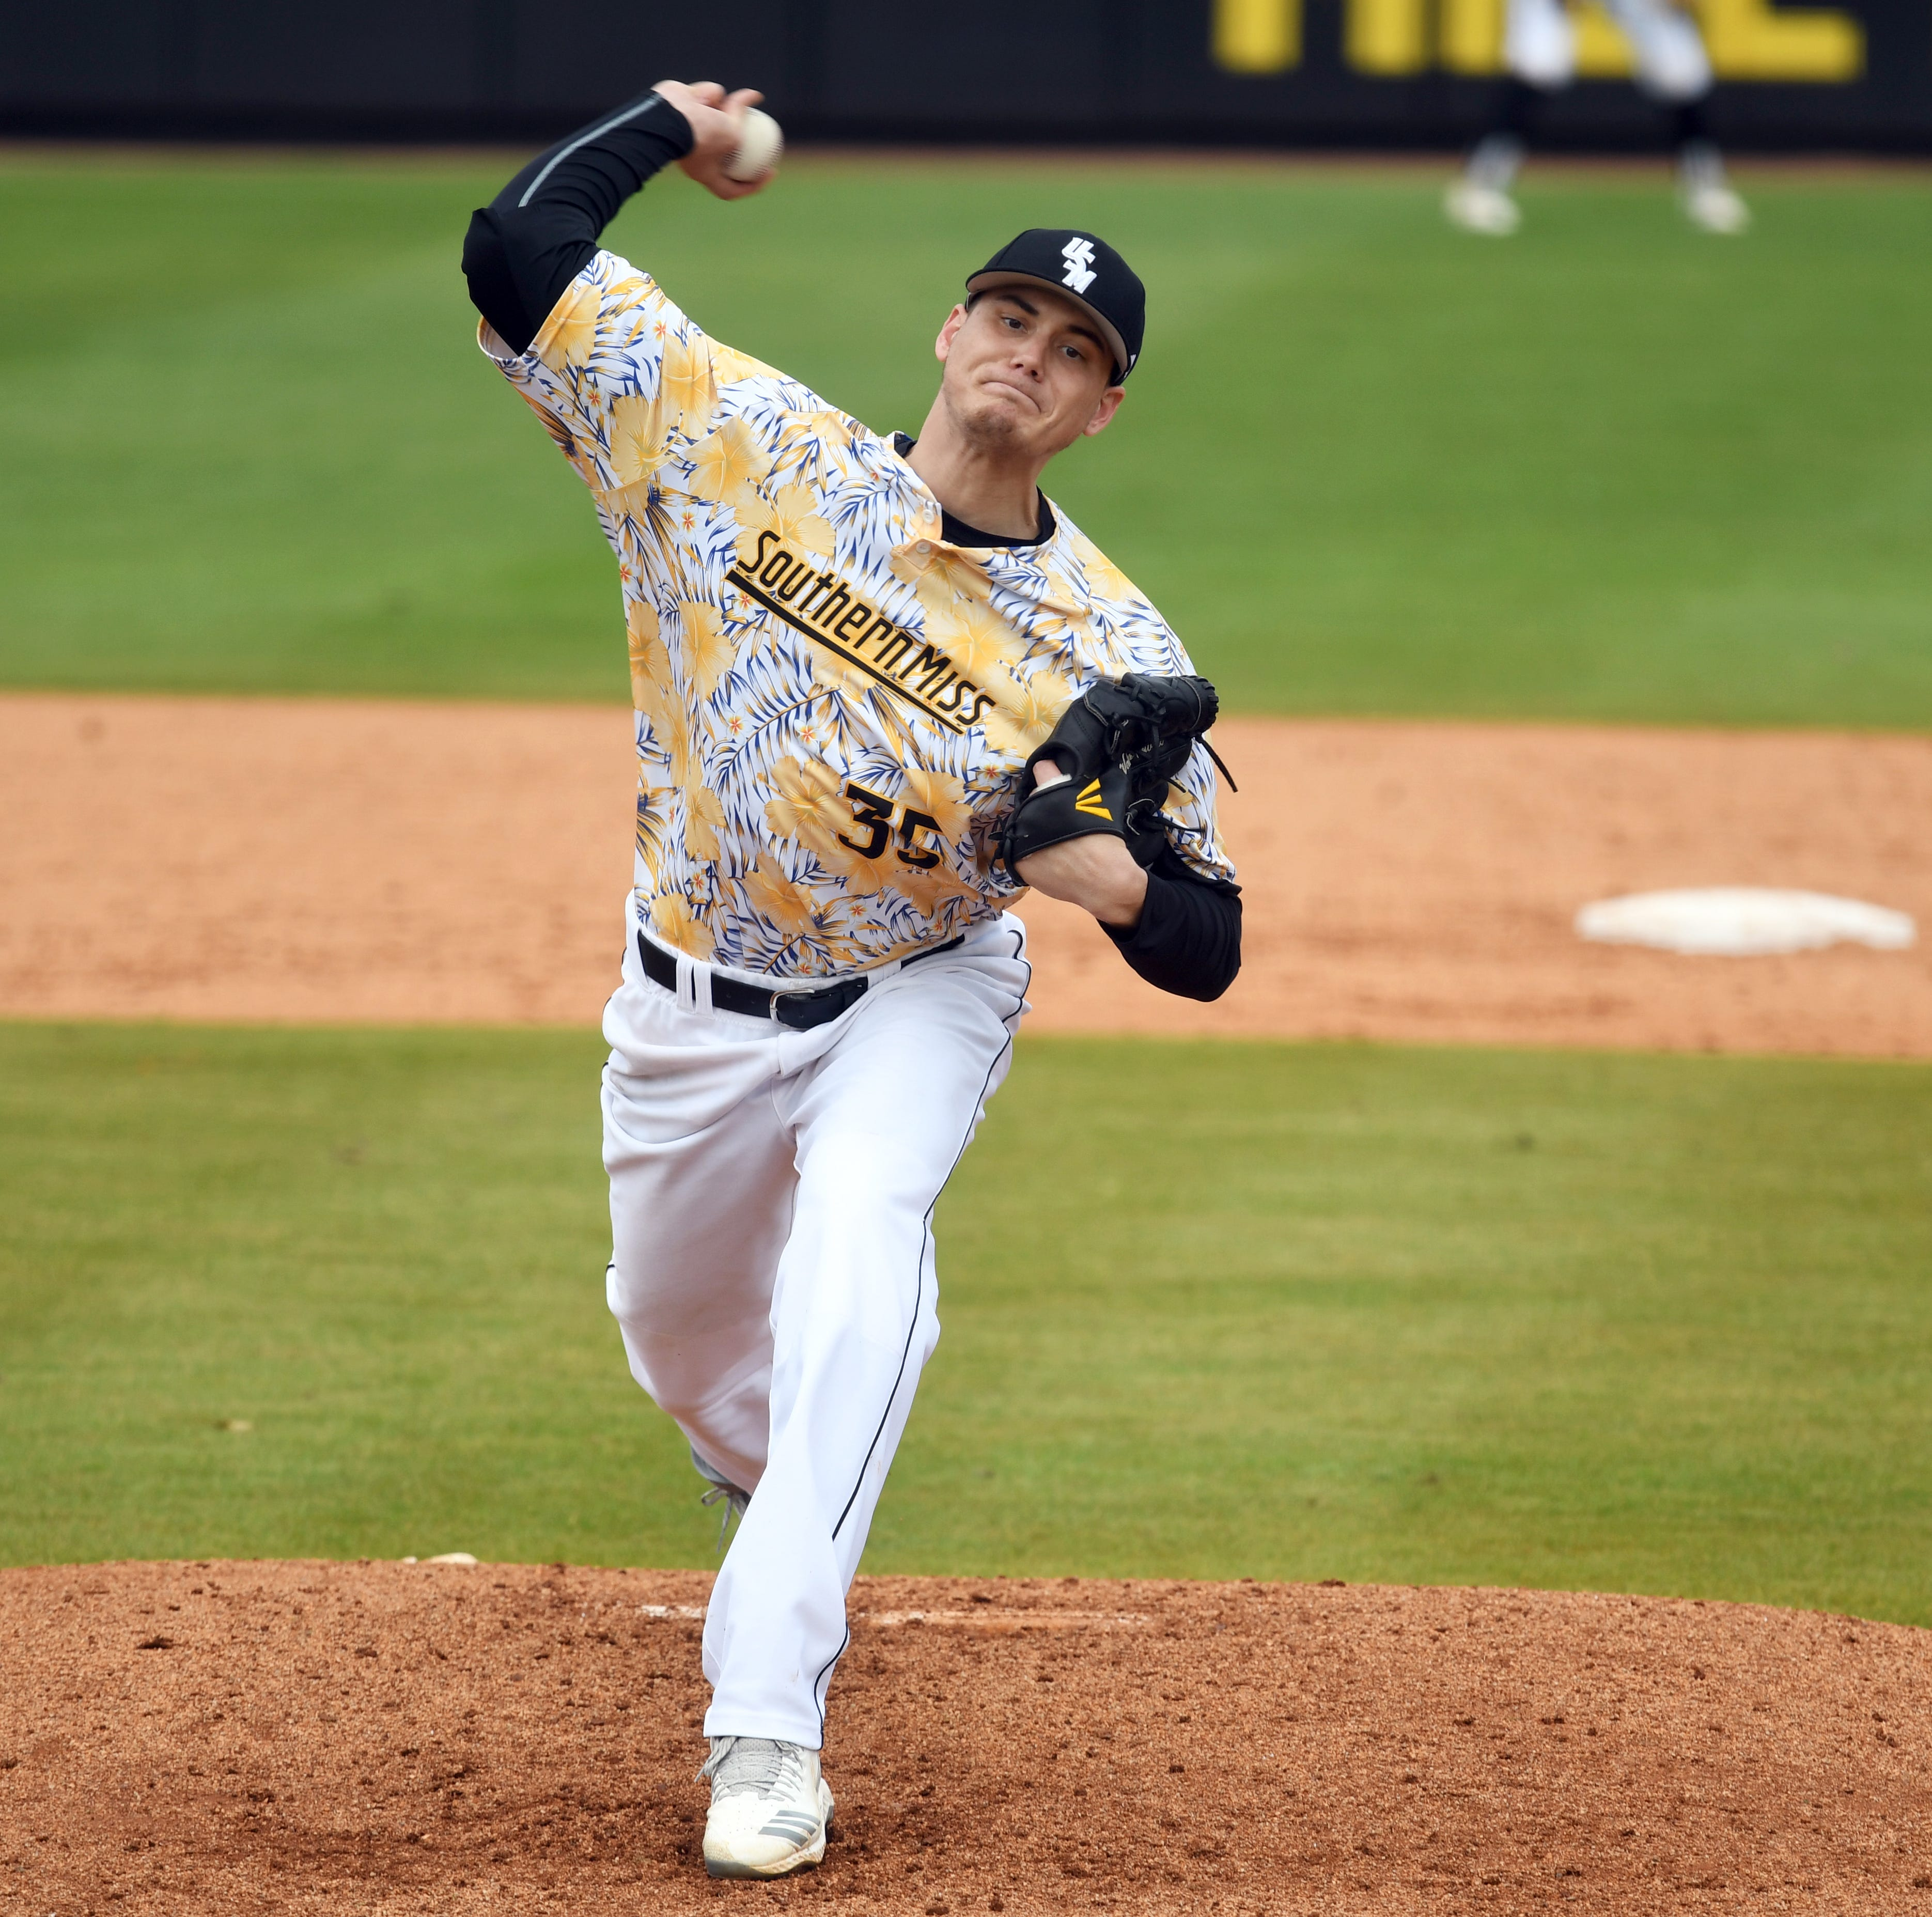 Southern Miss baseball: What to know ahead of series vs. UTSA